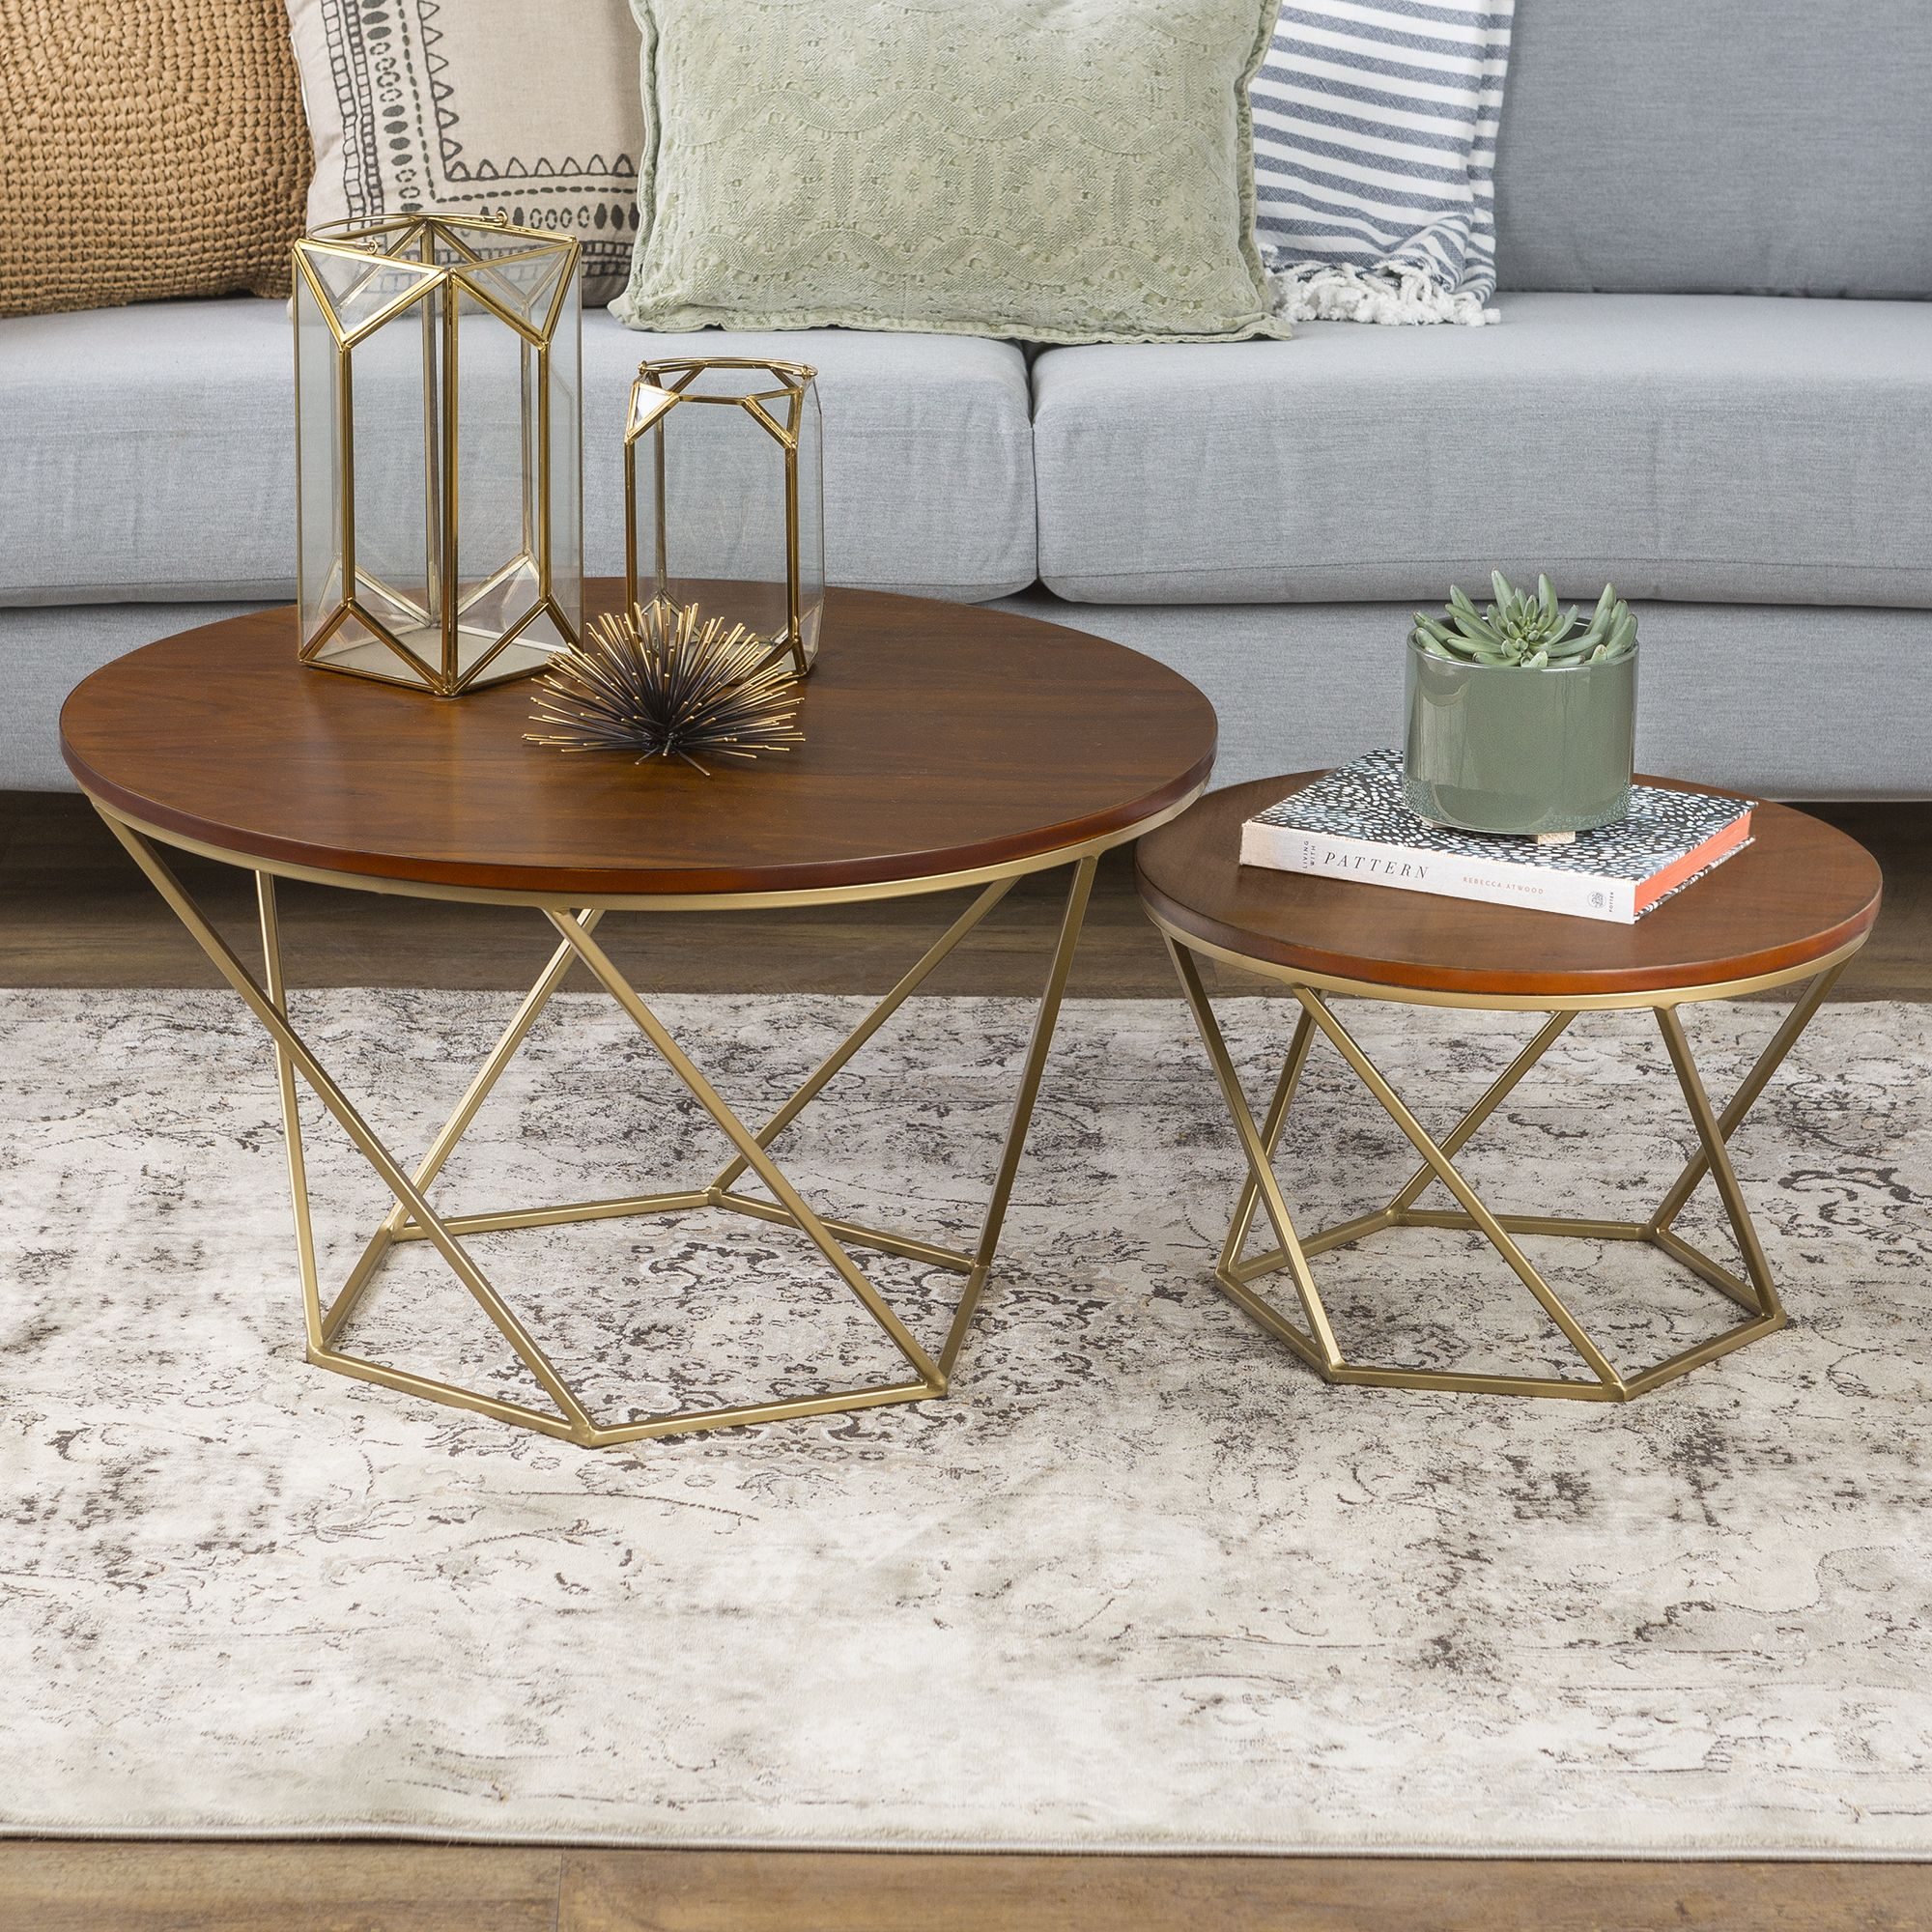 Eloise Geometric Walnut And Gold Nesting End Tables By Ember Interiors Walmart Com Nesting Coffee Tables Coffee Table Living Room Accent Tables [ 2000 x 2000 Pixel ]